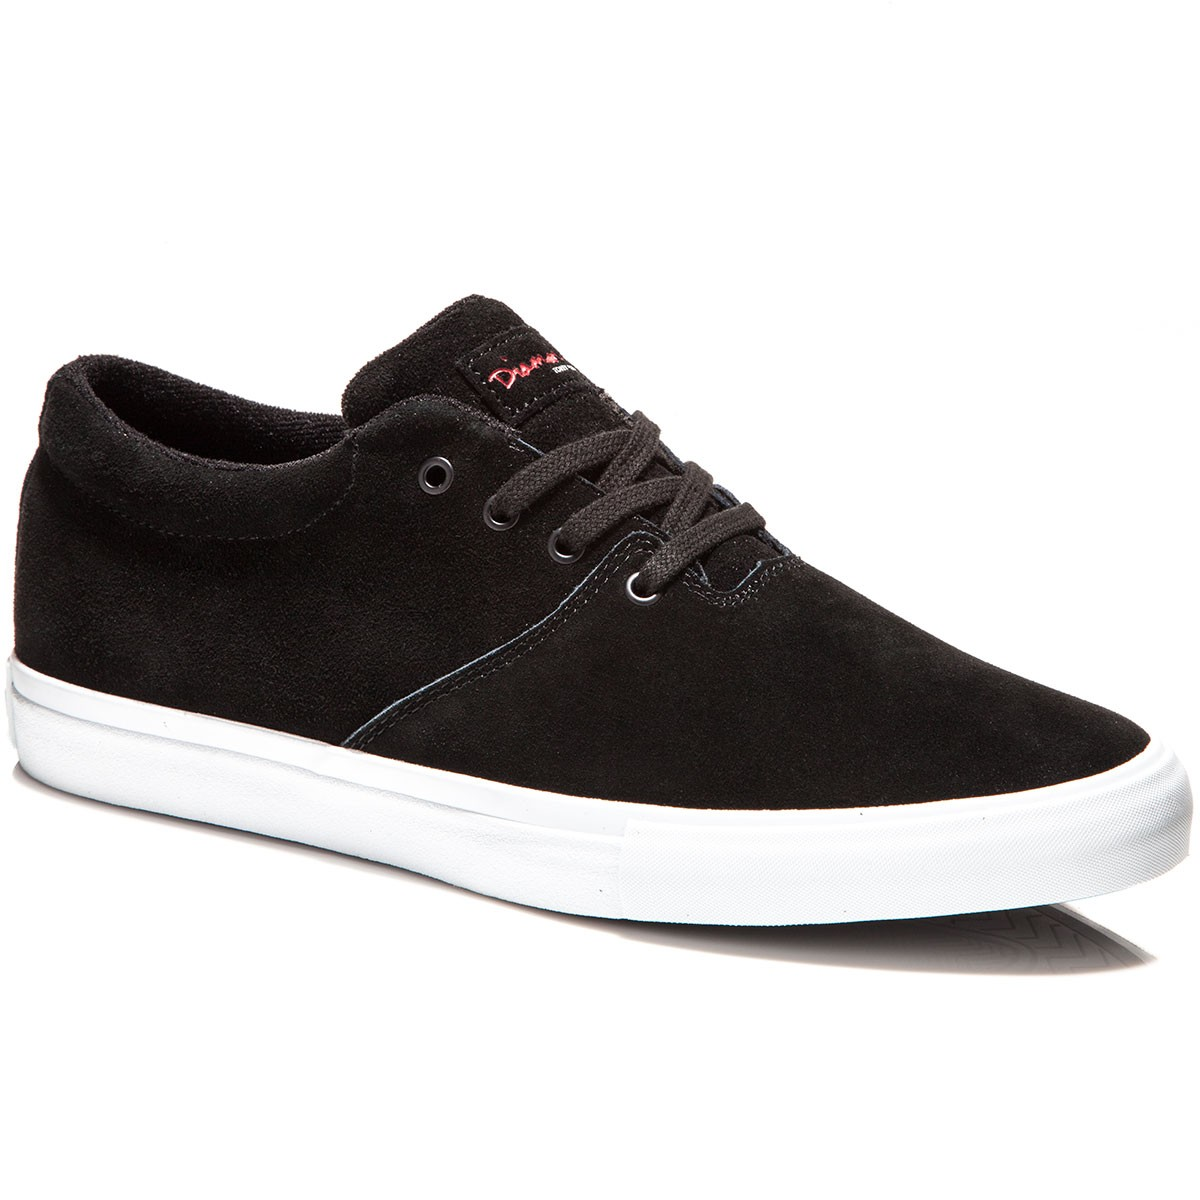 Diamond Supply Co. Torey Shoes - photo#9